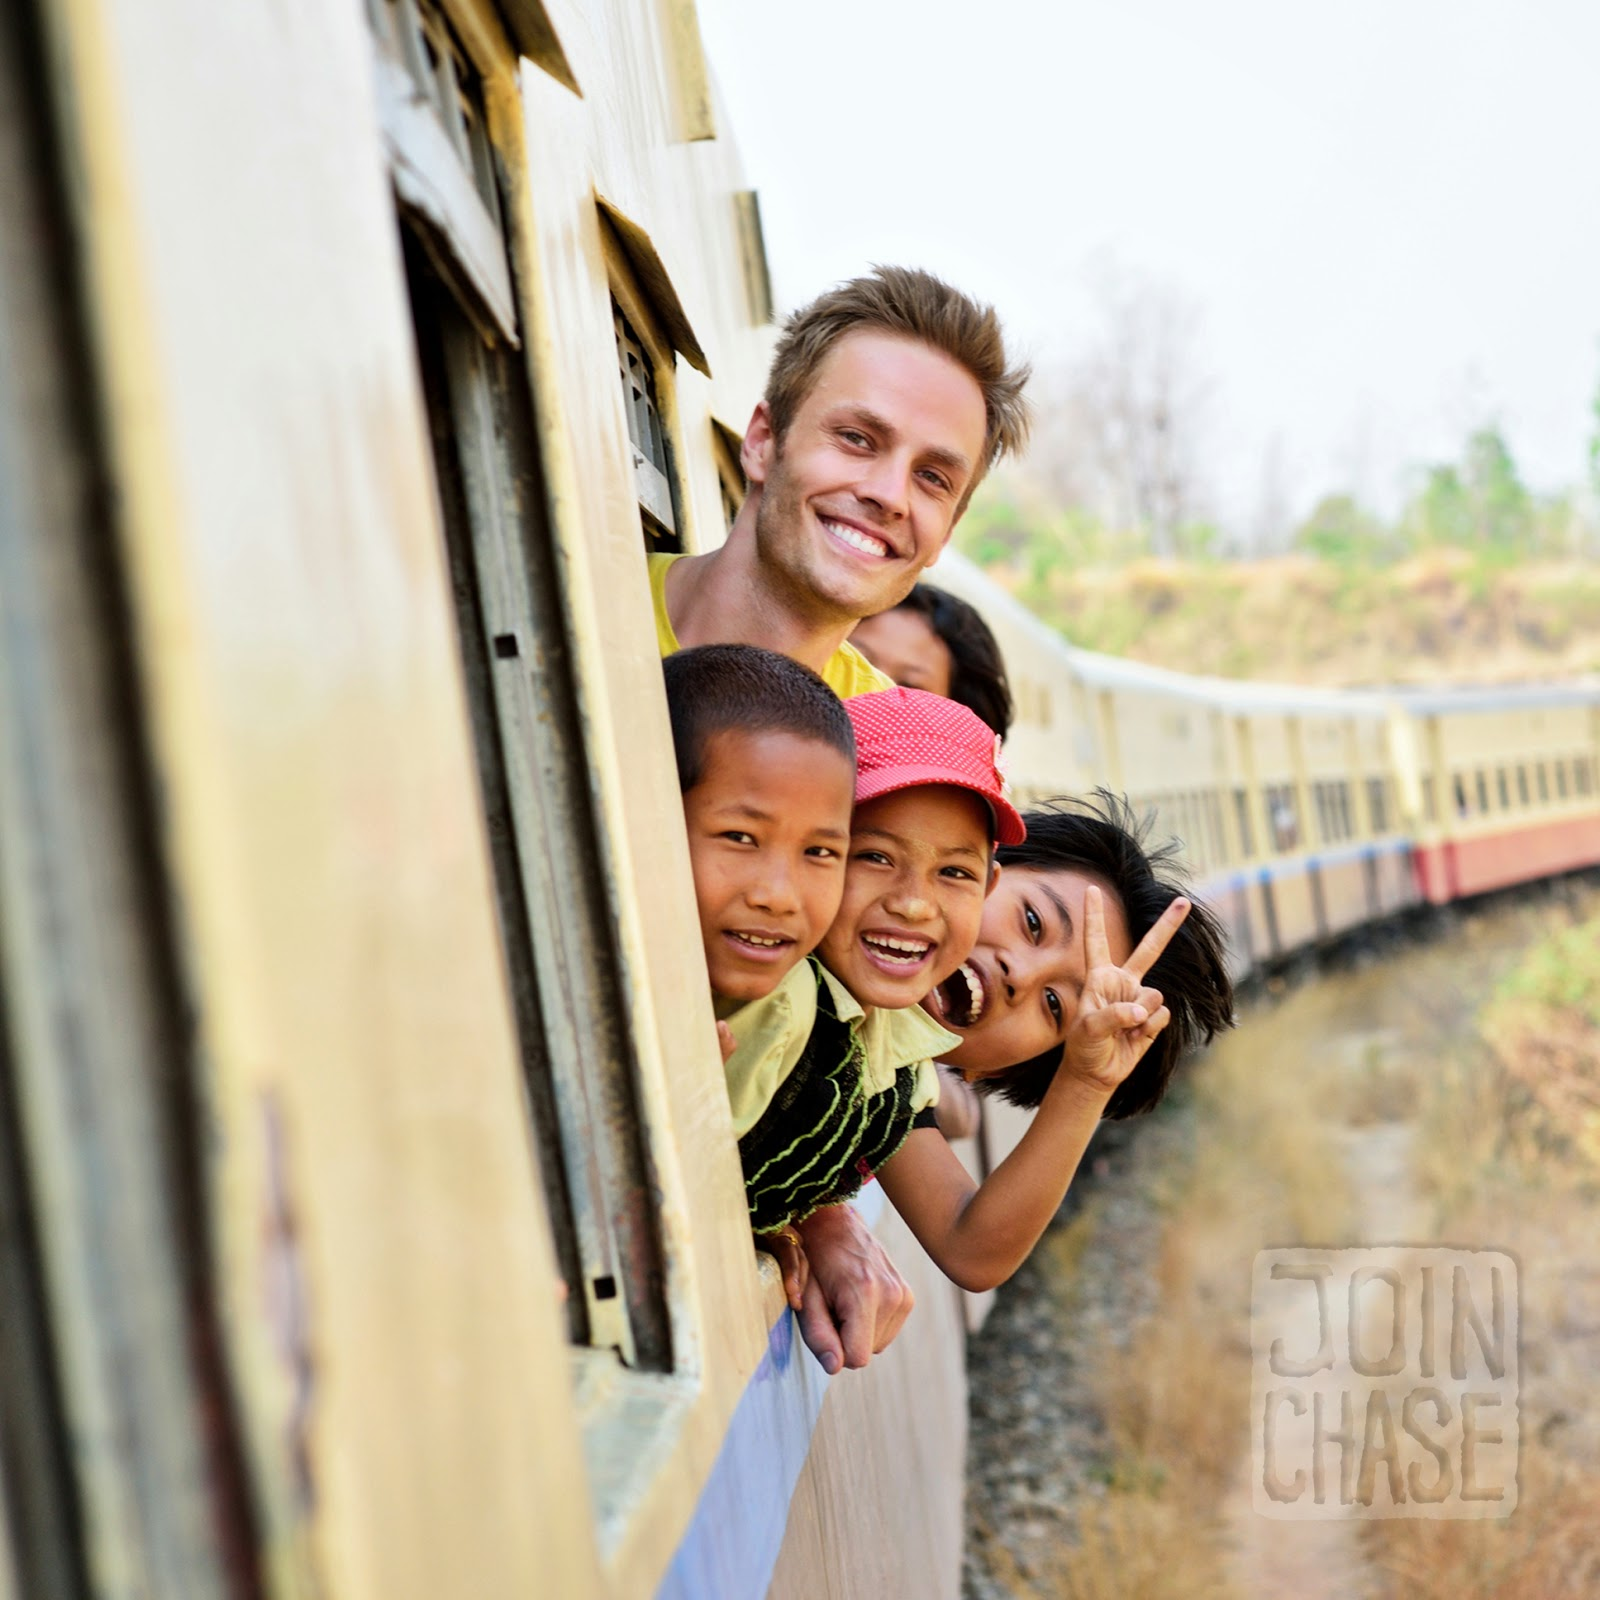 Posing for a photo with children on the train from Yangon to Bagan, Myanmar.